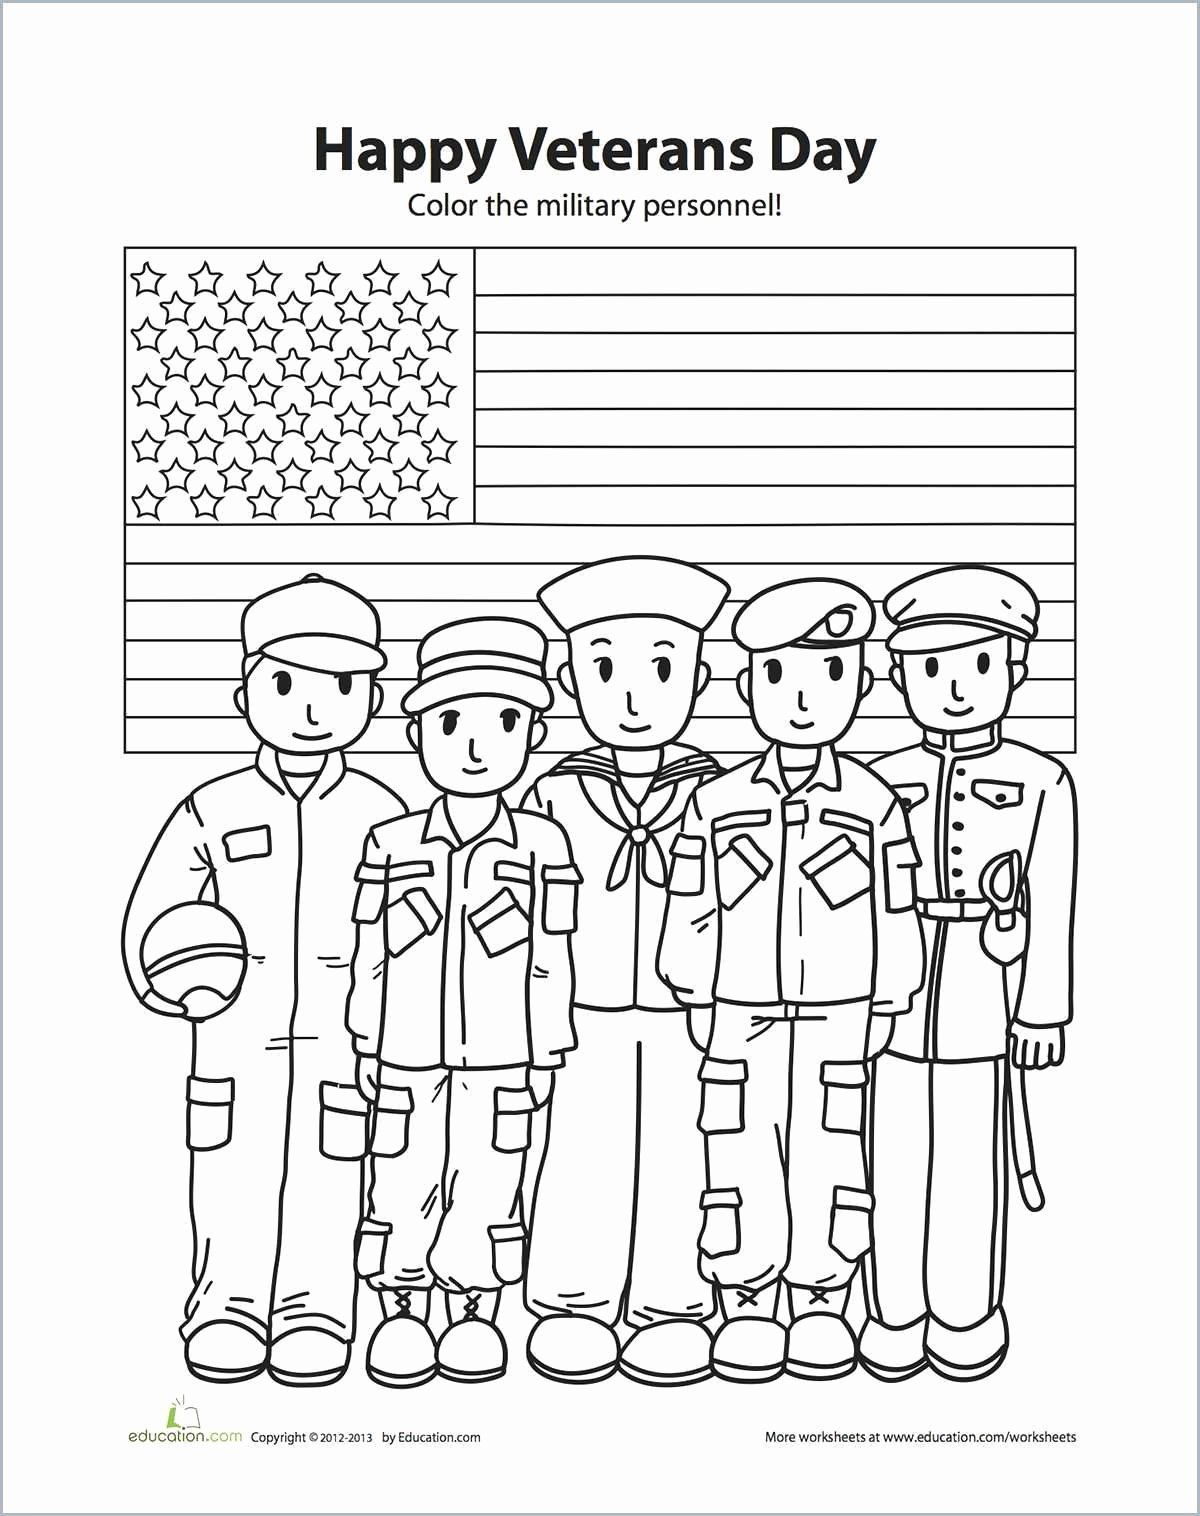 Happy Veterans Day Coloring Pages Lovely Of Veterans